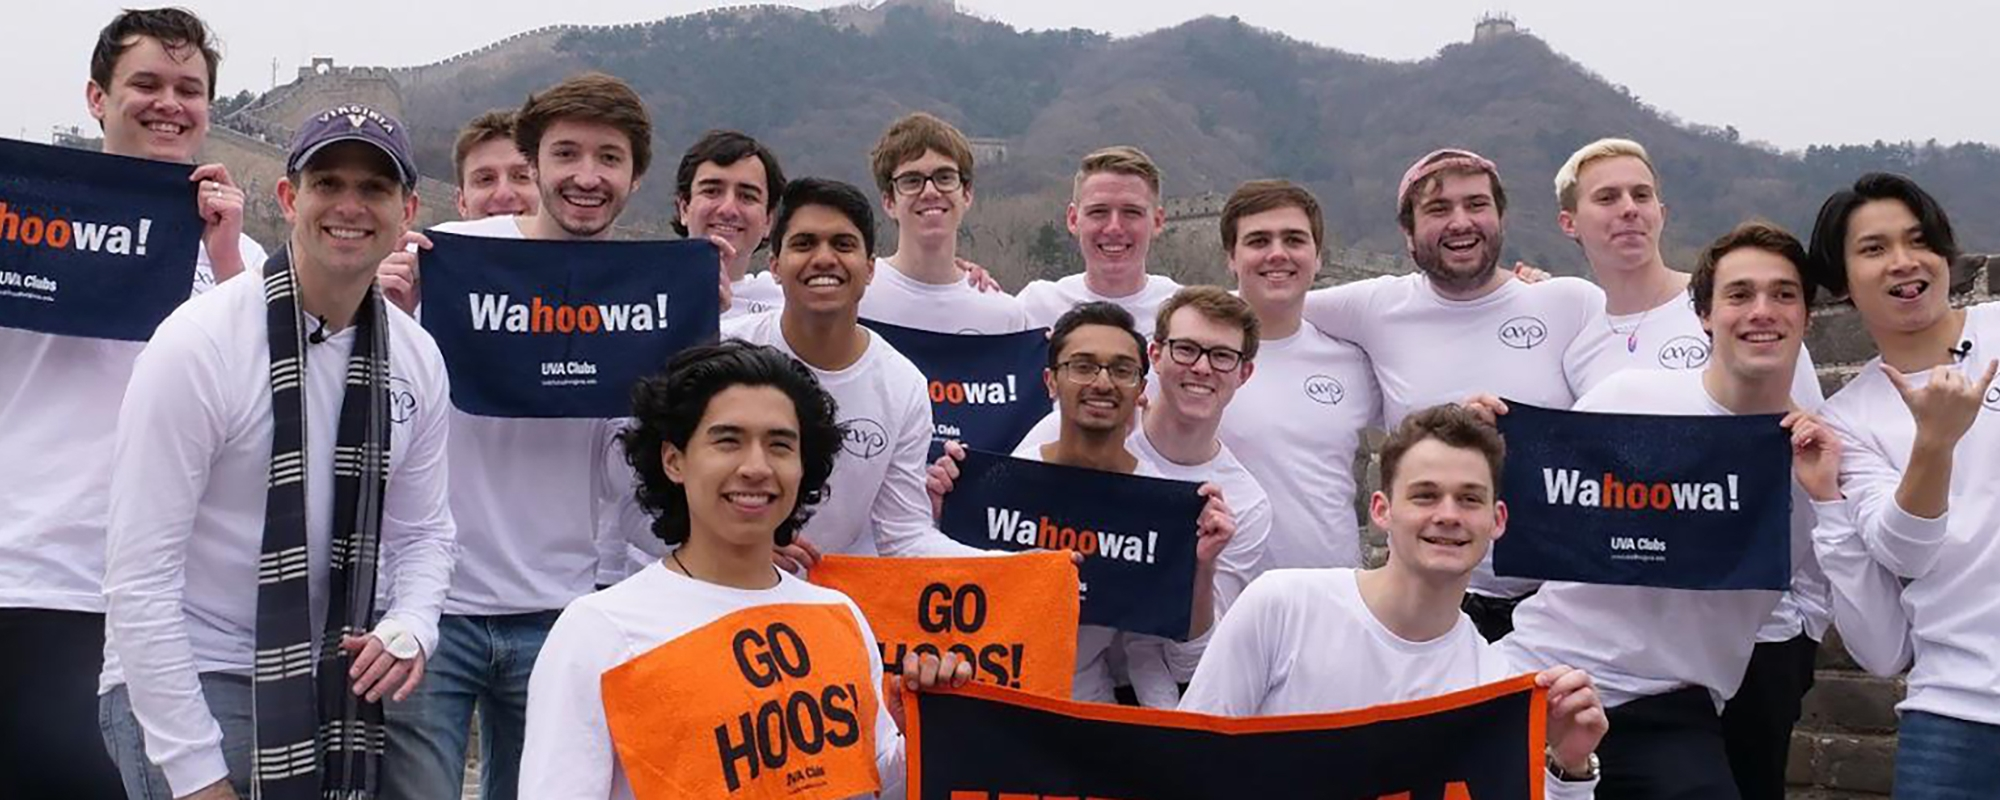 "UVA A Capella Group holding ""Wahoowa!"" and ""Go Hoos'"" signs"